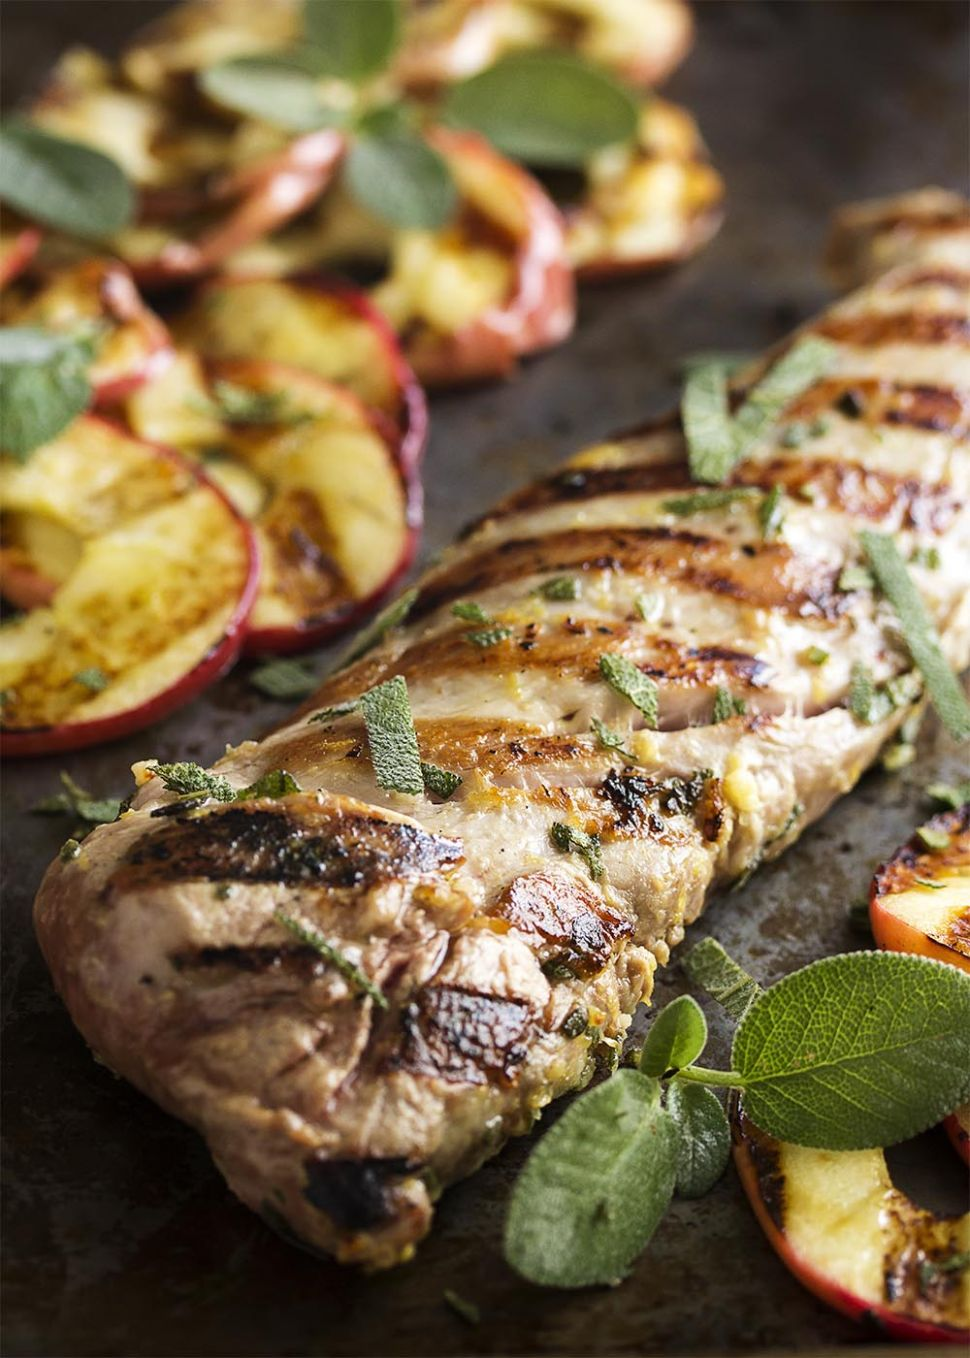 Grilled Pork Tenderloin with Apples and Sage - Dinner Recipes Apple